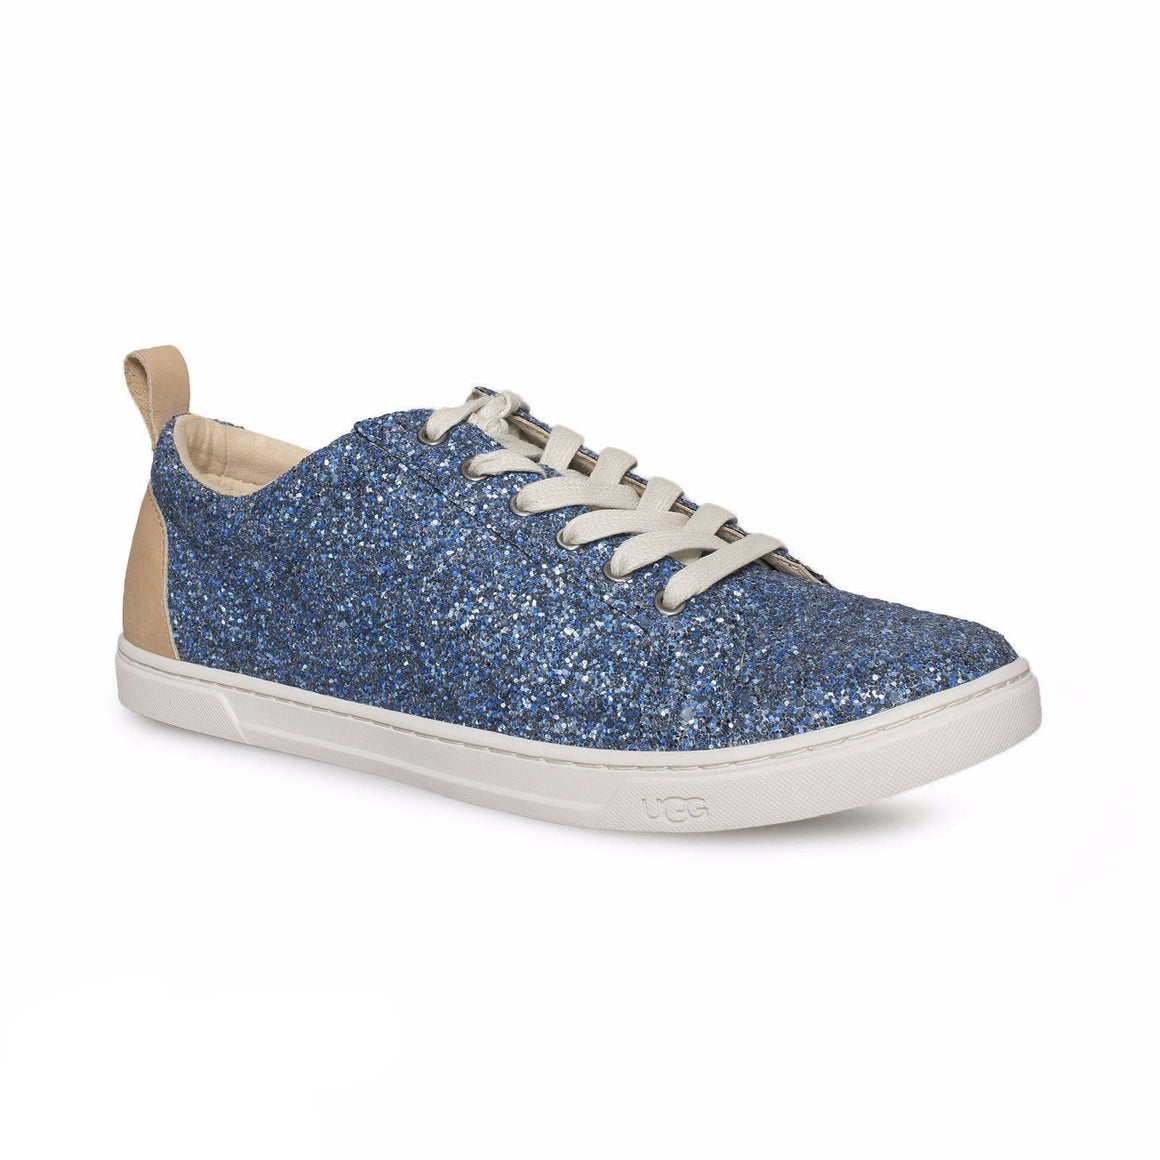 UGG Karine Chunky Glitter Blue Multi Shoes